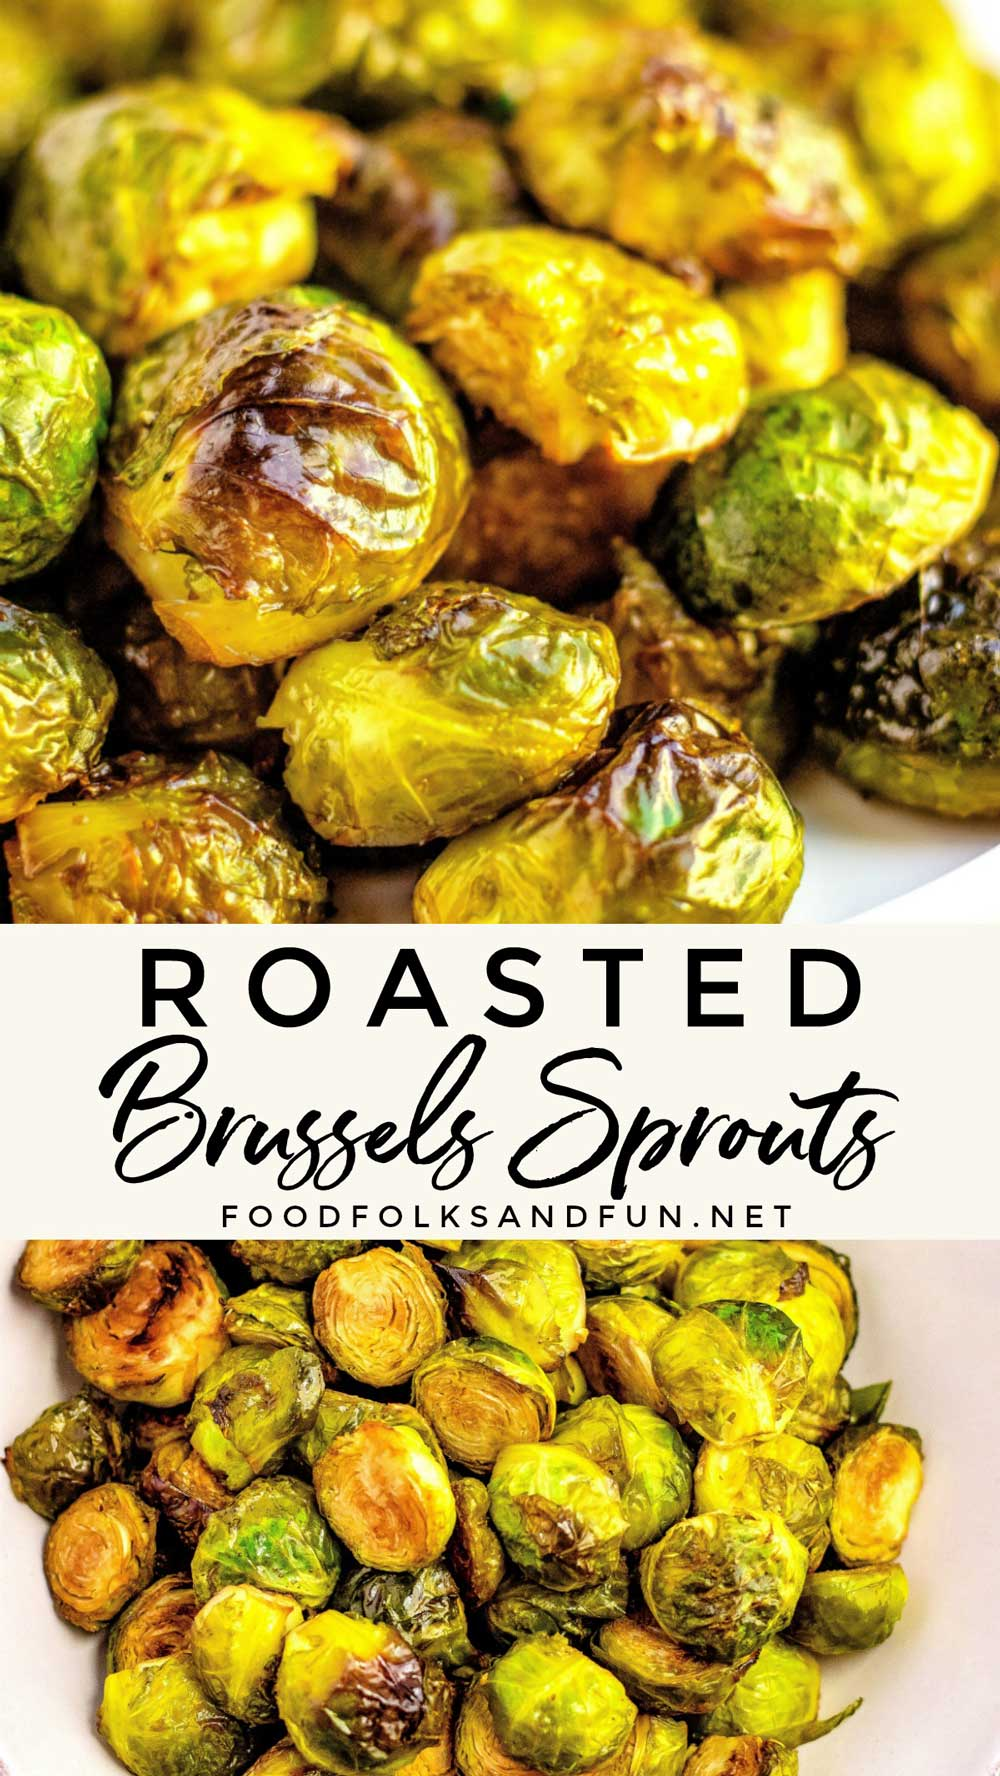 This Roasted Brussels Sprouts recipe is a quick and easy way to bring these tiny cabbages to life. They're caramelized on the outside and tender on the inside.